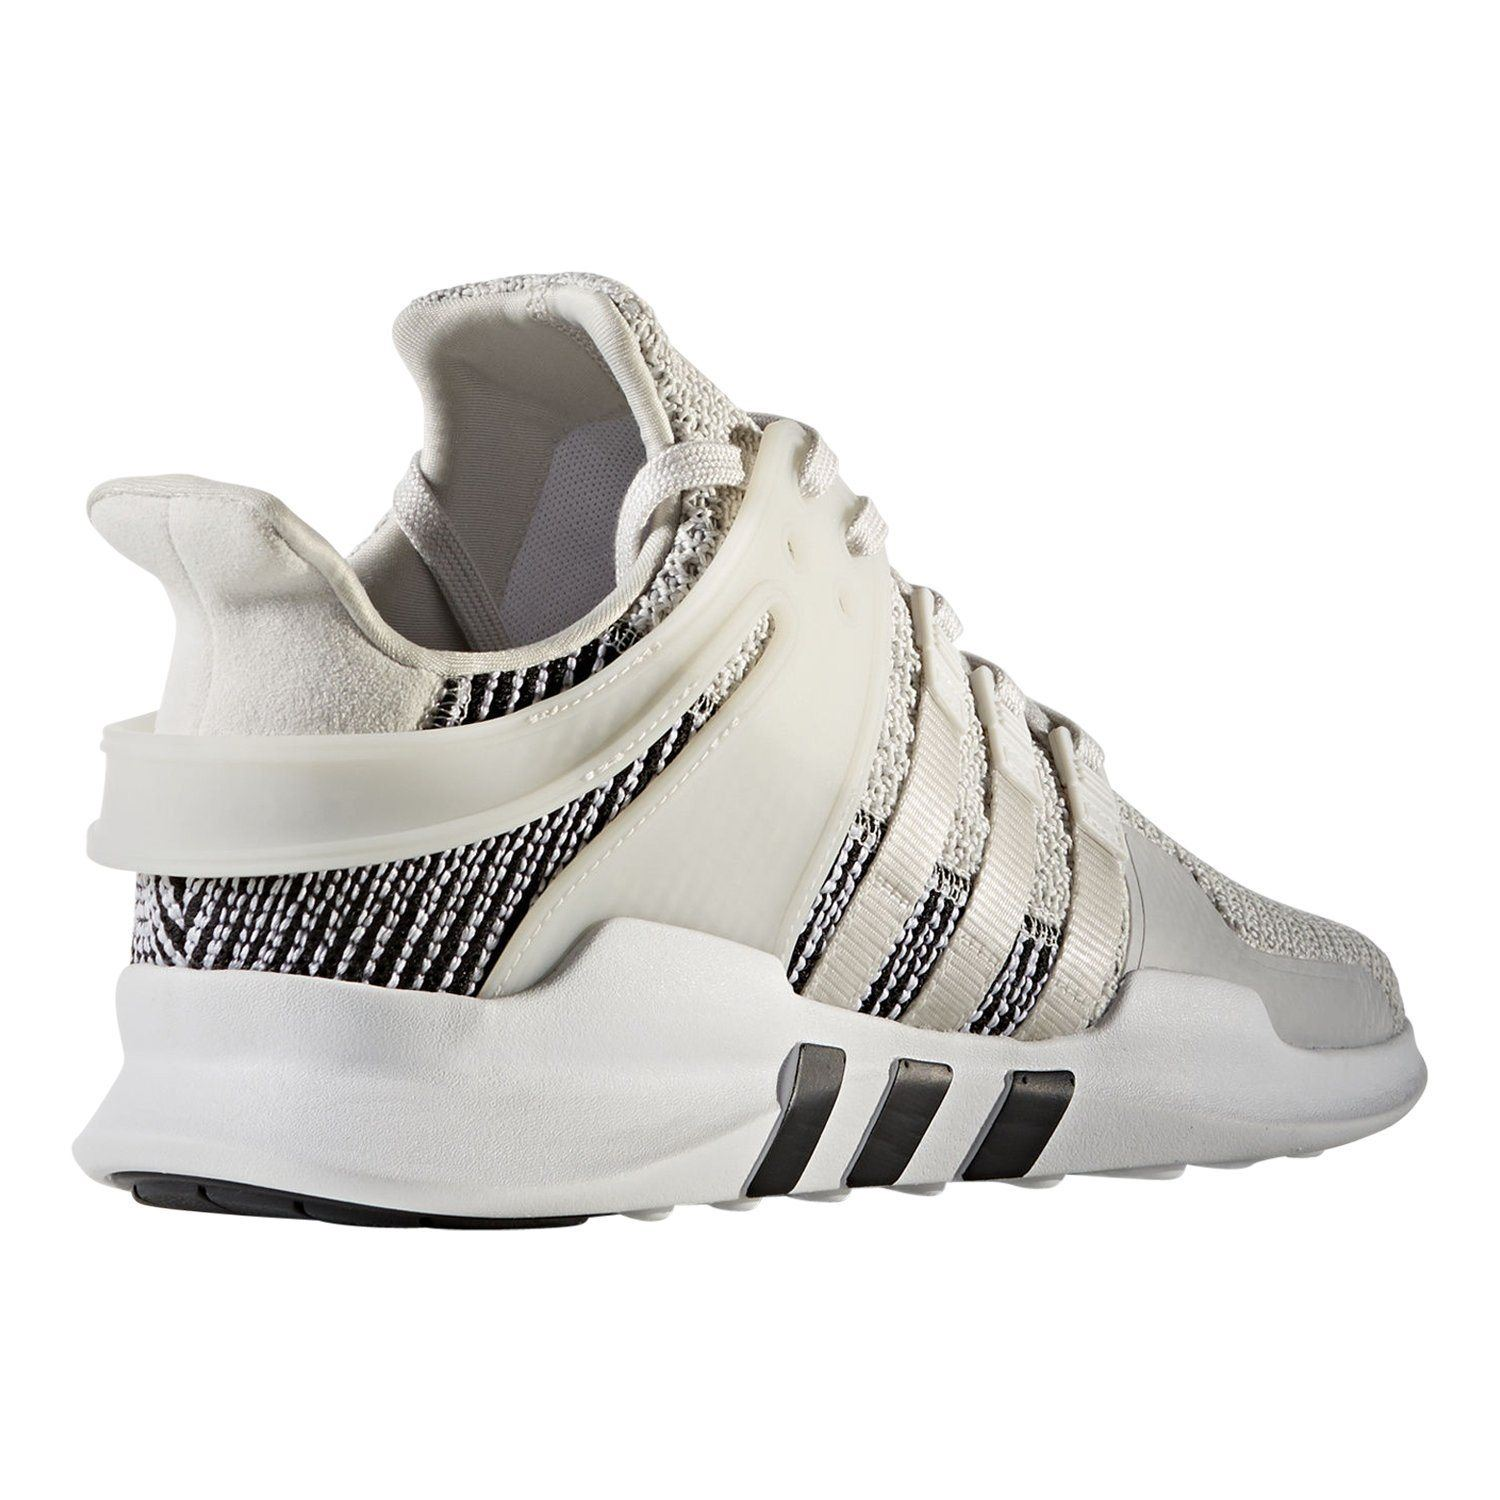 ed319a76893d adidas MEN S EQT SUPPORT ADV TRAINERS WHITE SHOES SNEAKERS RUNNING 3  STRIPES GYM